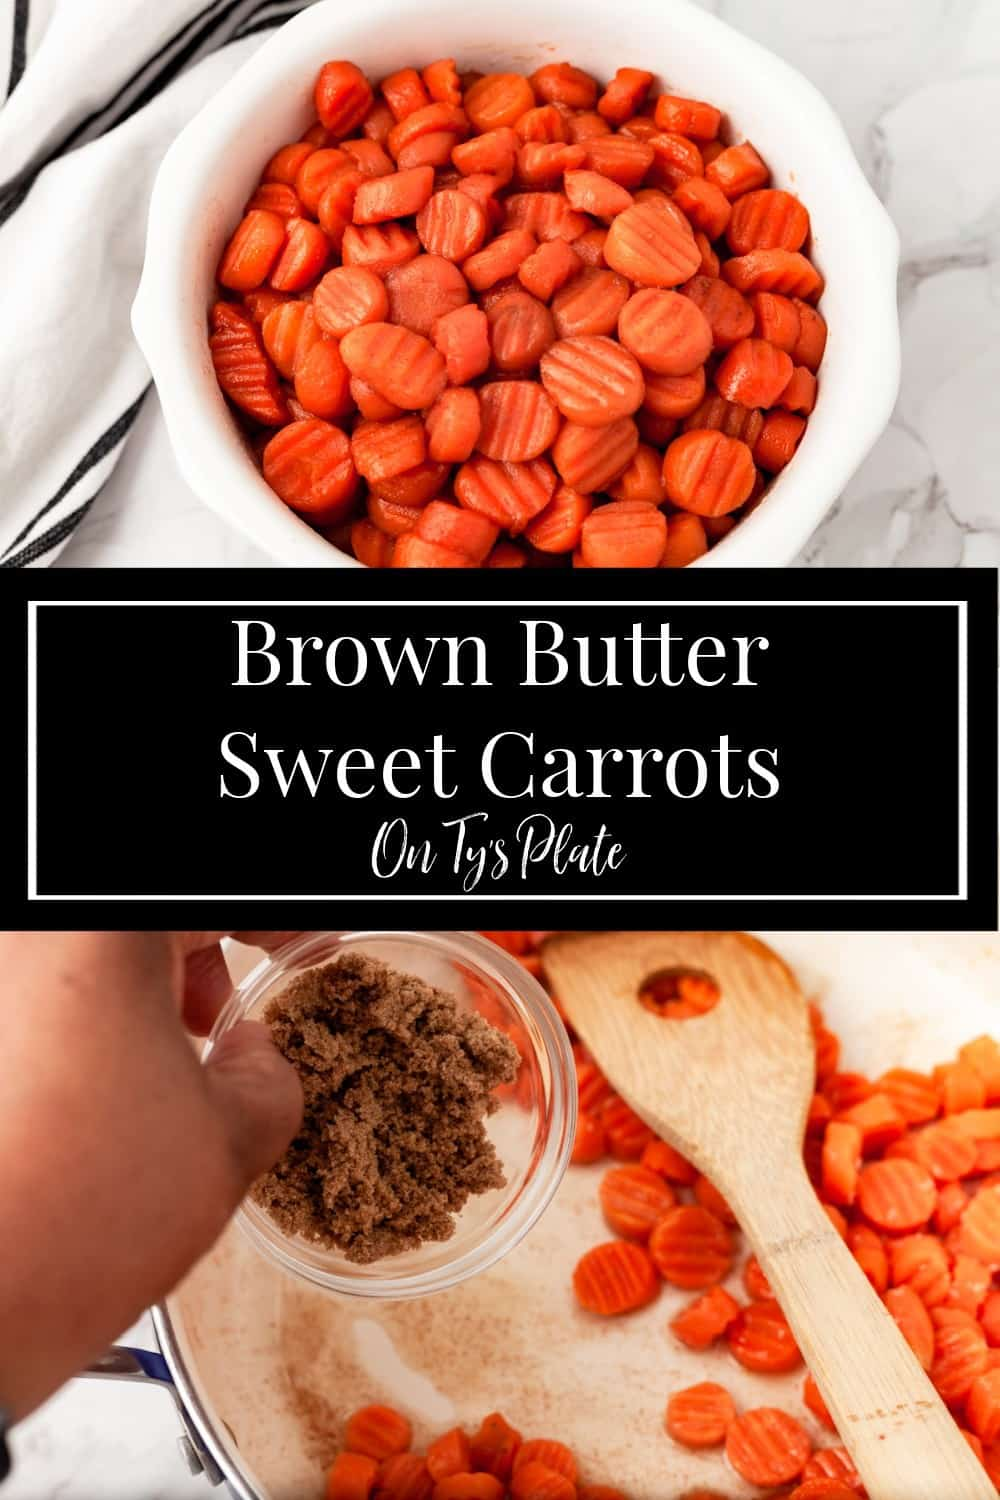 Brown Butter Sweet Carrots